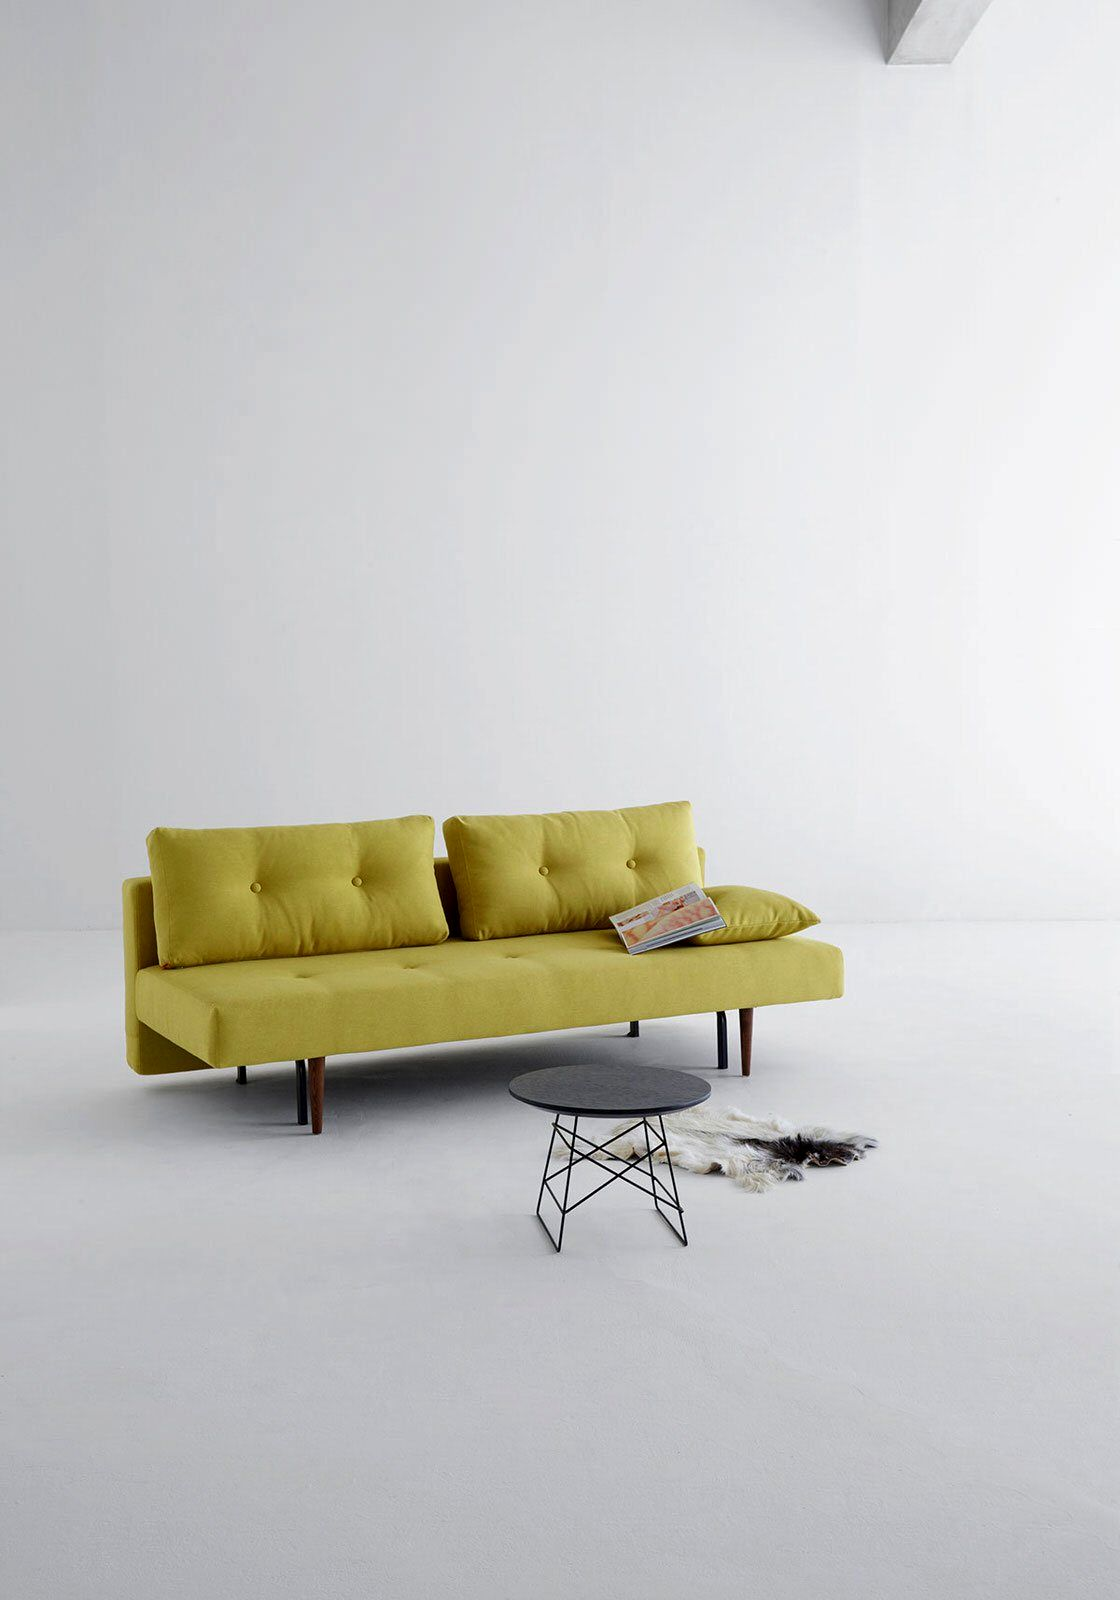 best sofa chicago 2015 architecture-New sofa Chicago 2015 Model